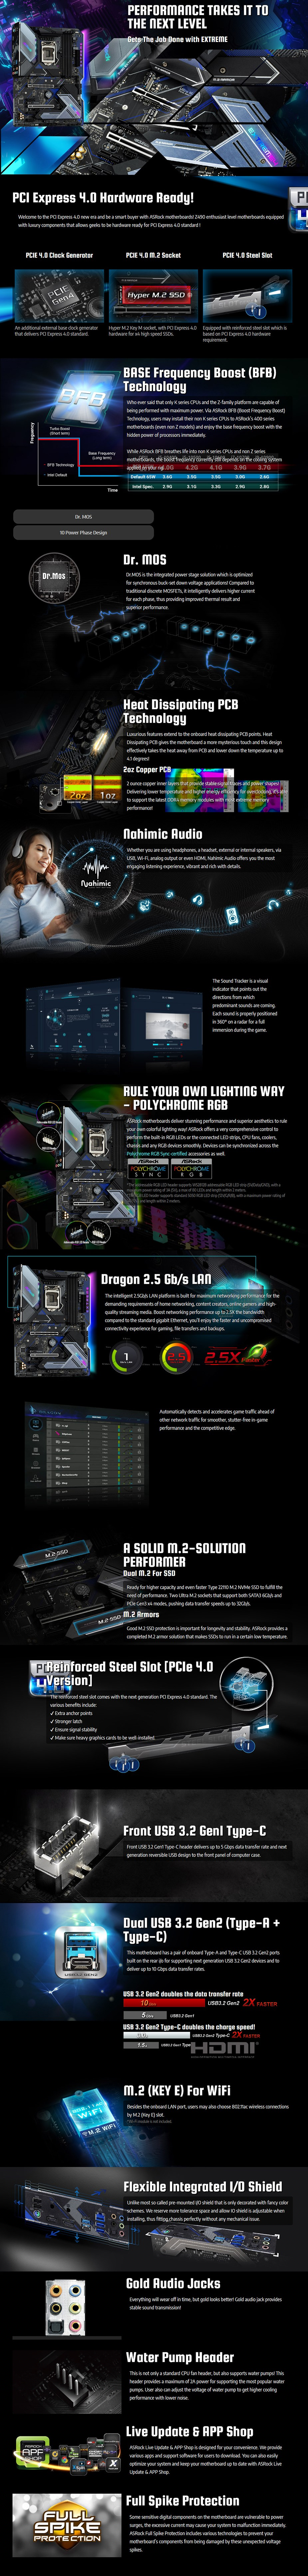 ASRock Z490 Extreme4 LGA 1200 ATX Motherboard - Overview 1